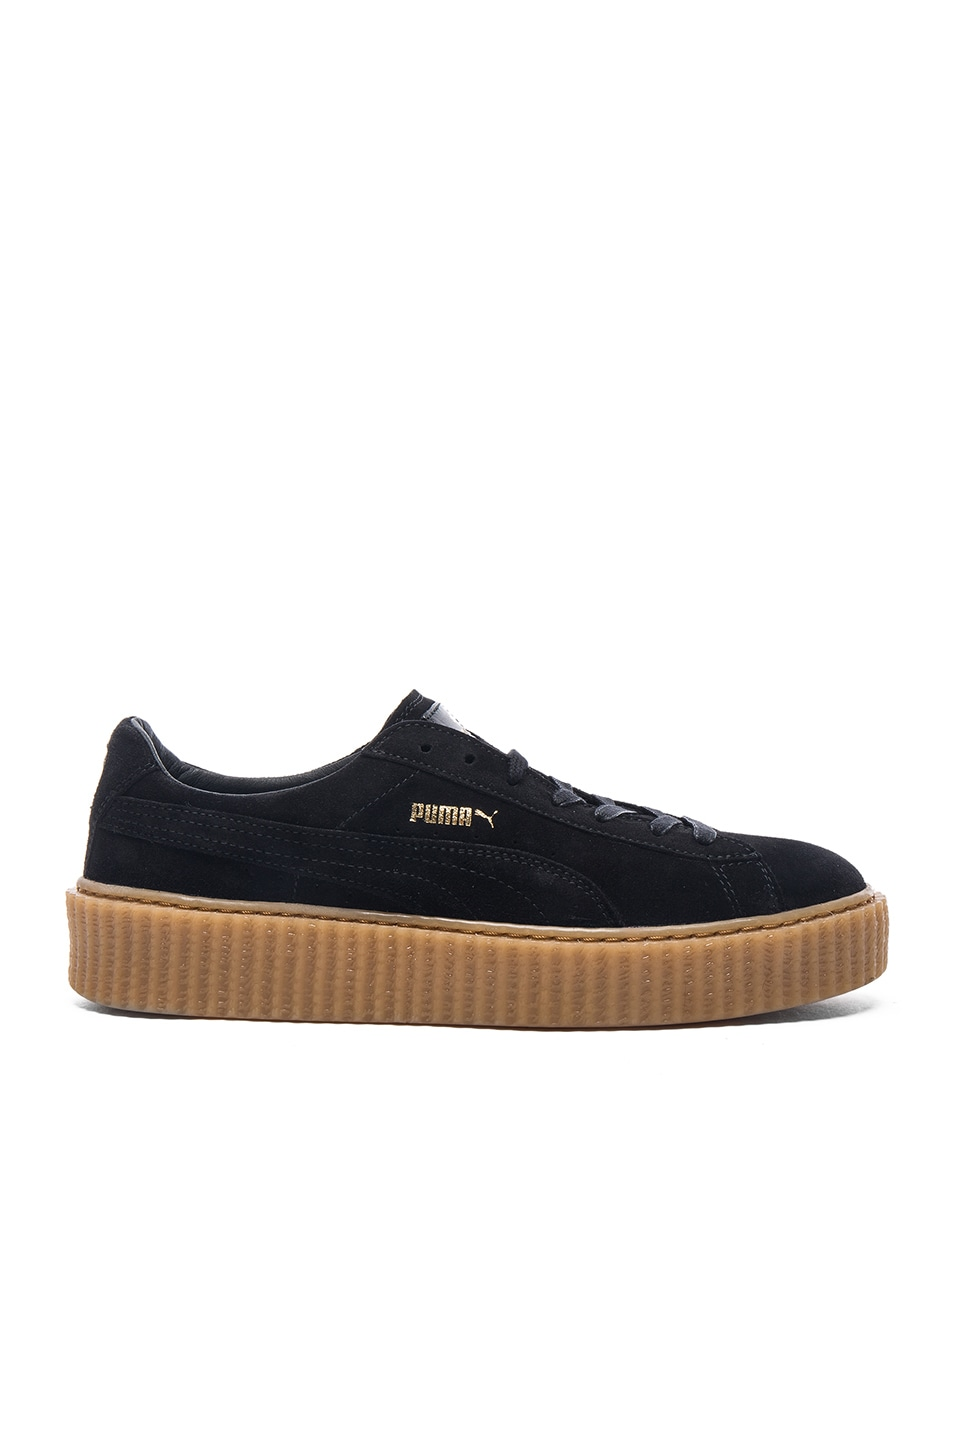 Image 2 of Puma by Rihanna Creepers in Black